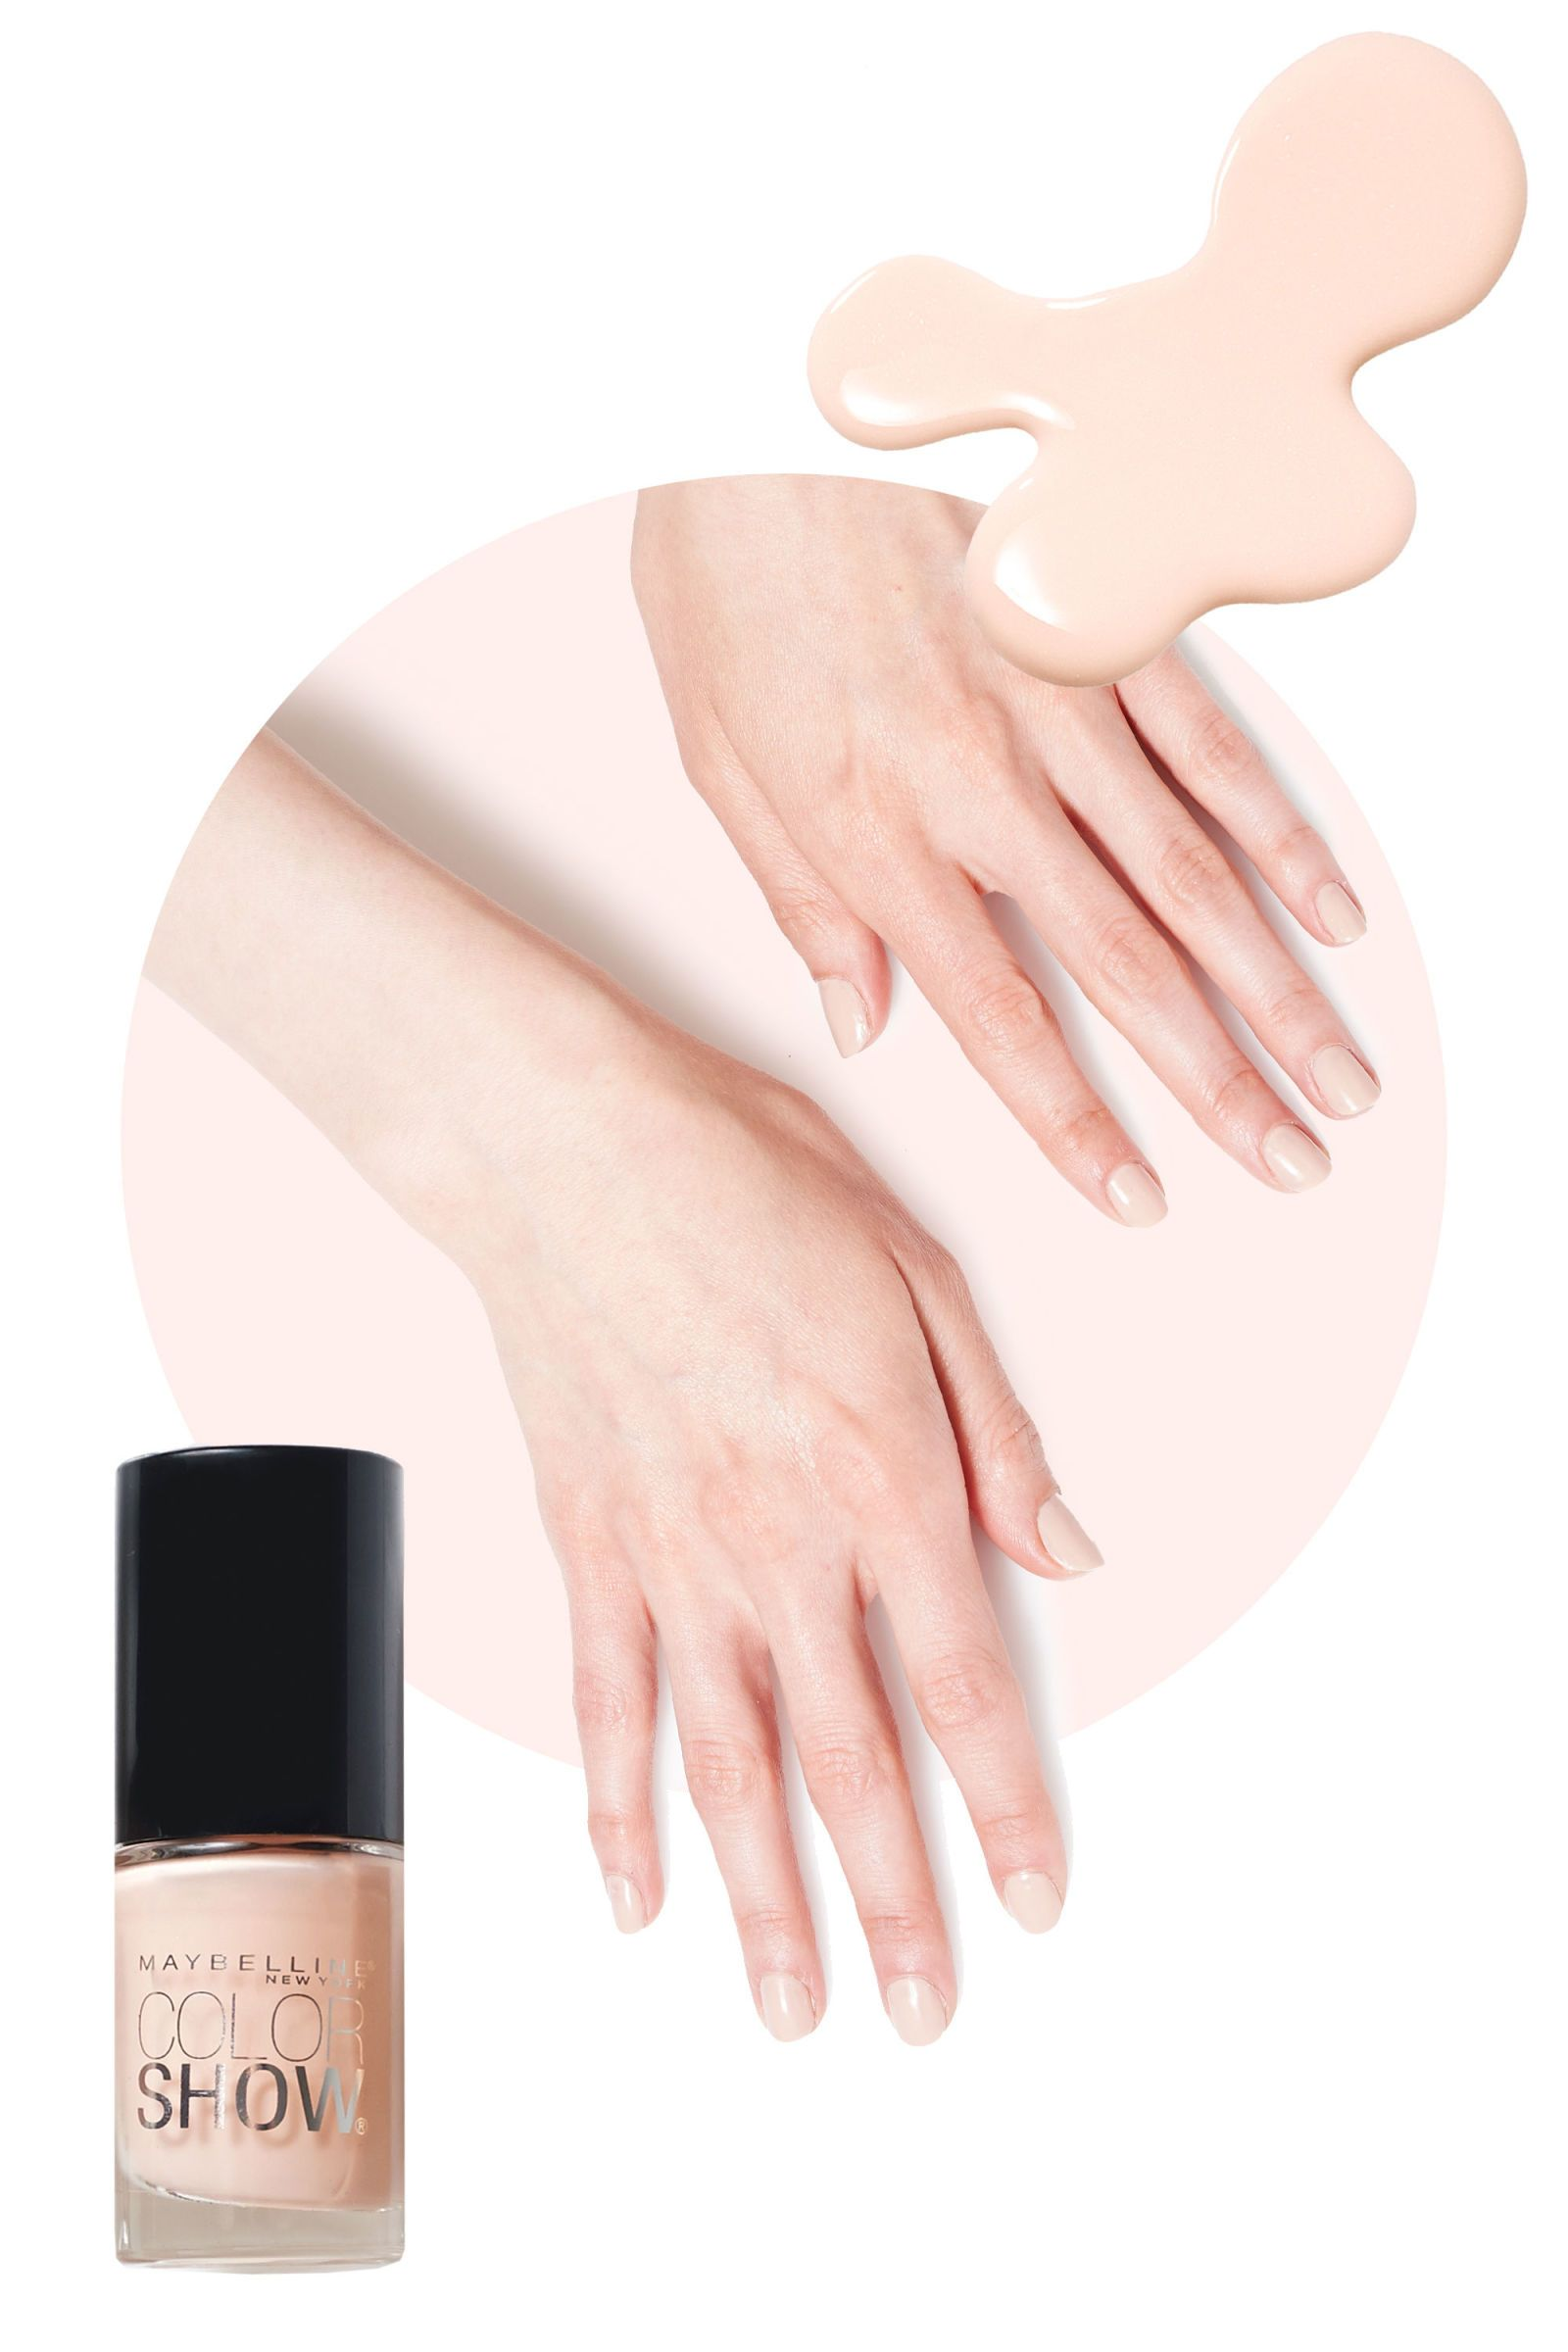 32 Nude Nail Polishes for Every Complexion | Pinterest | Maybelline ...